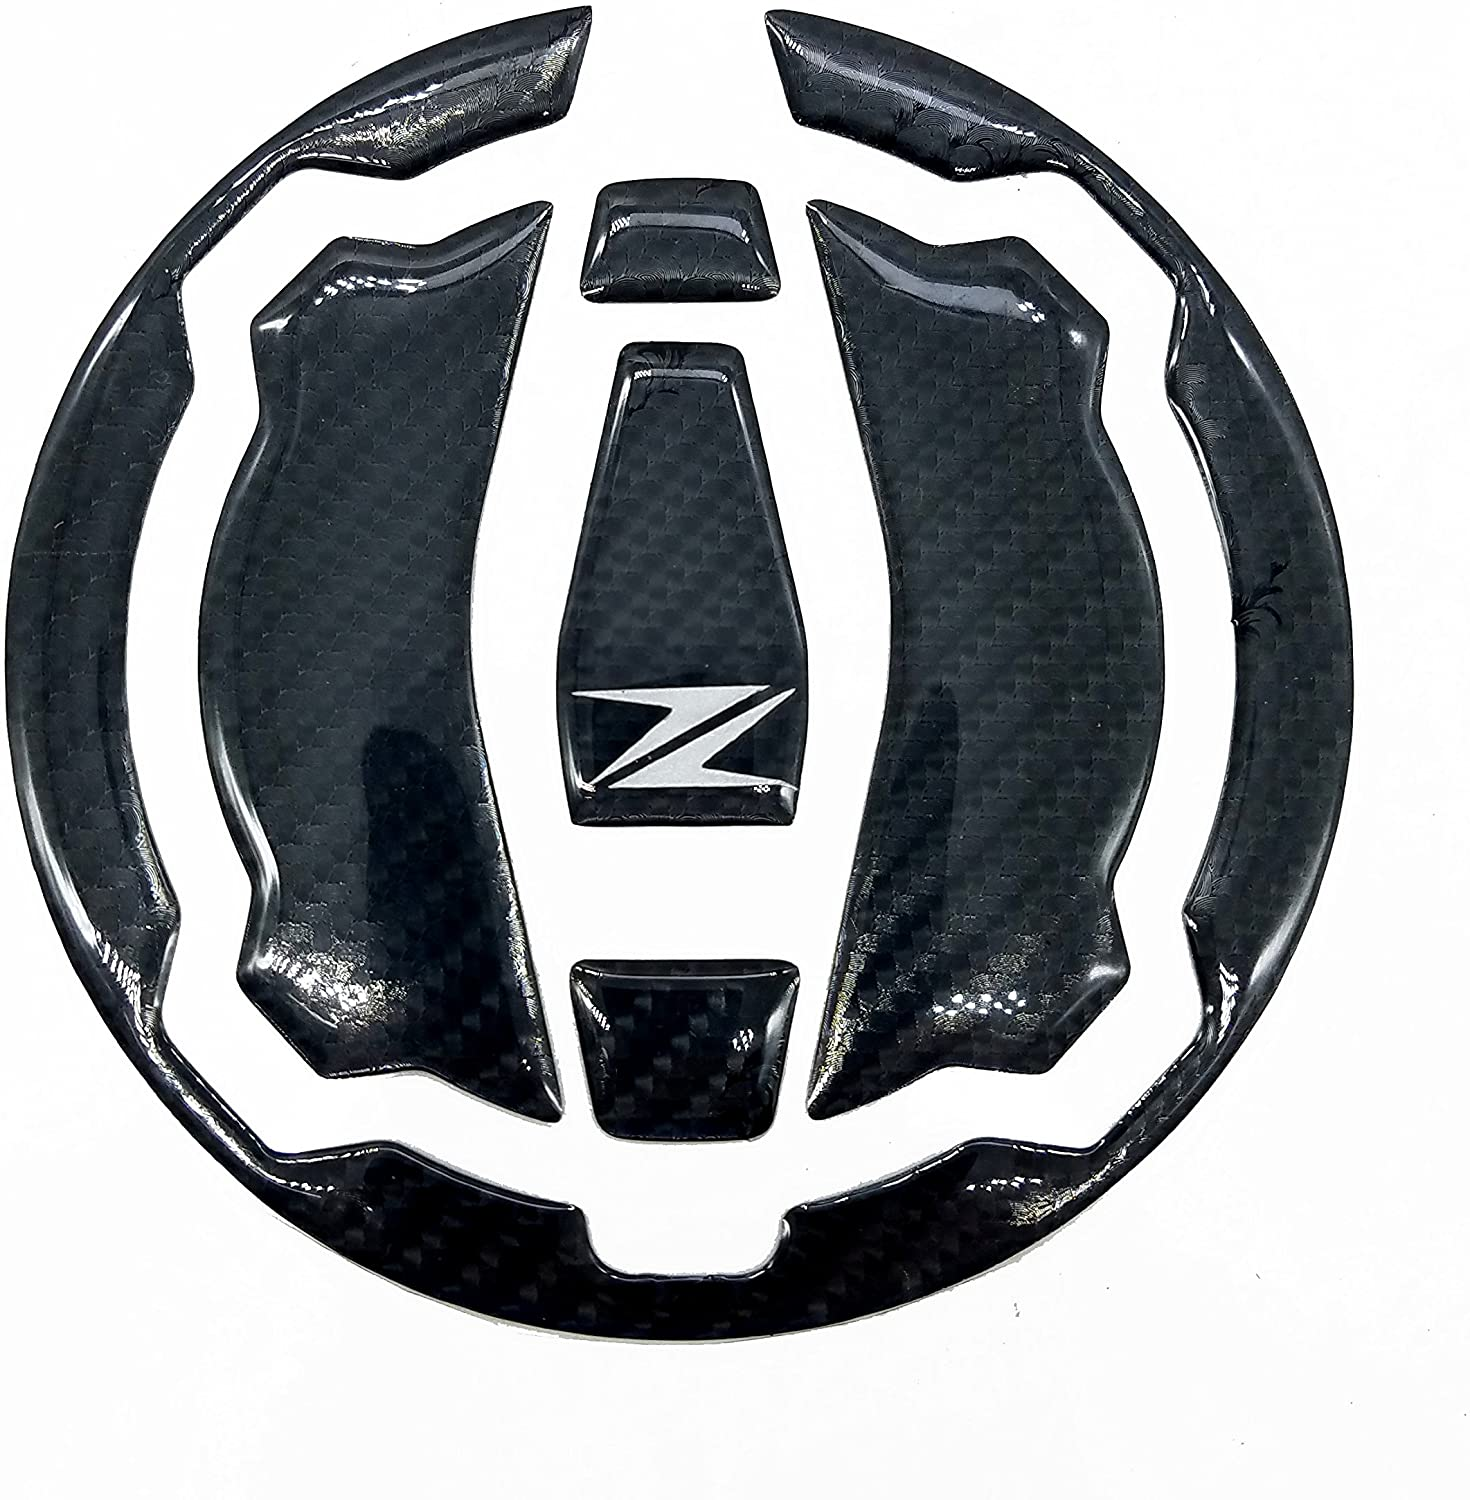 Real Carbon Fiber Fuel Gas Tank Cap Protector Pad For Kawasaki ninja 650 Z650 Z900 2017UP